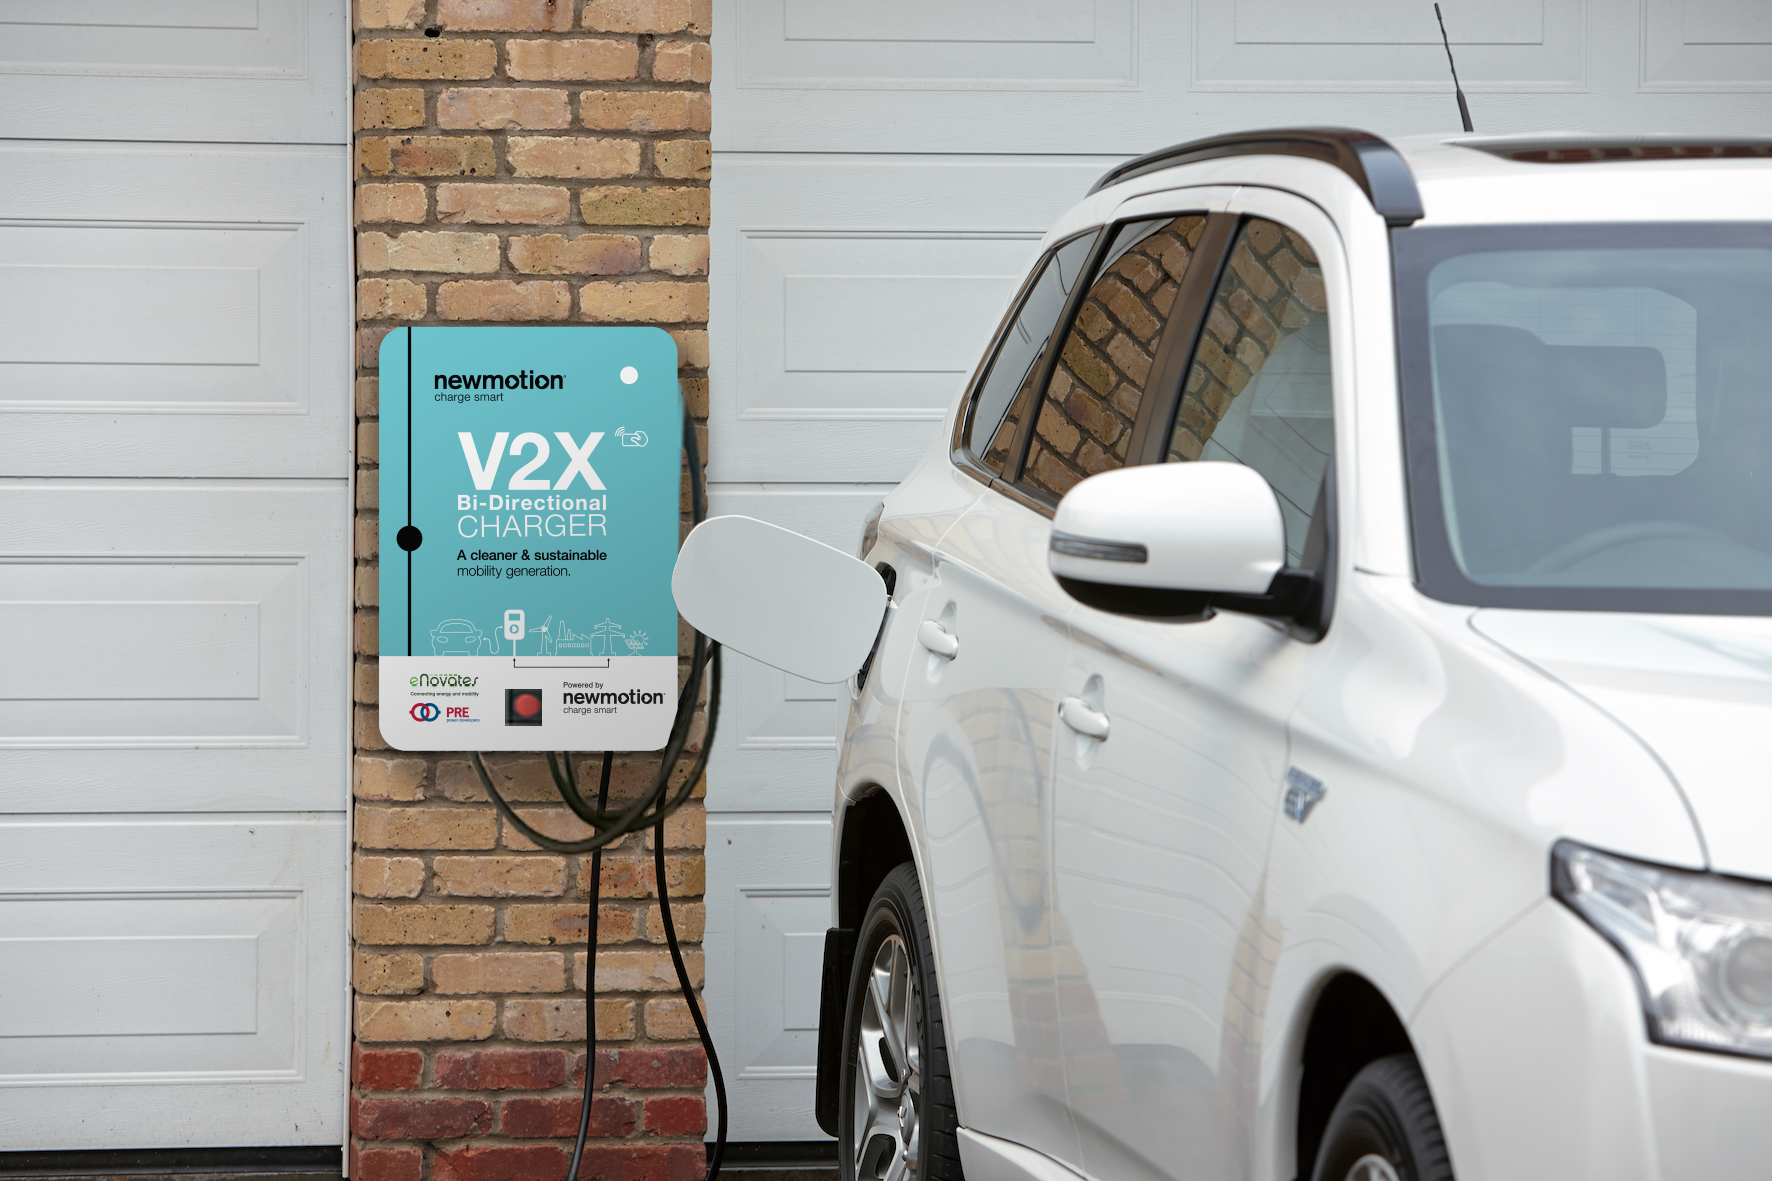 Charging Solutions For Ev Newmotion Making Inverter Technology Car The Future Of With V2x